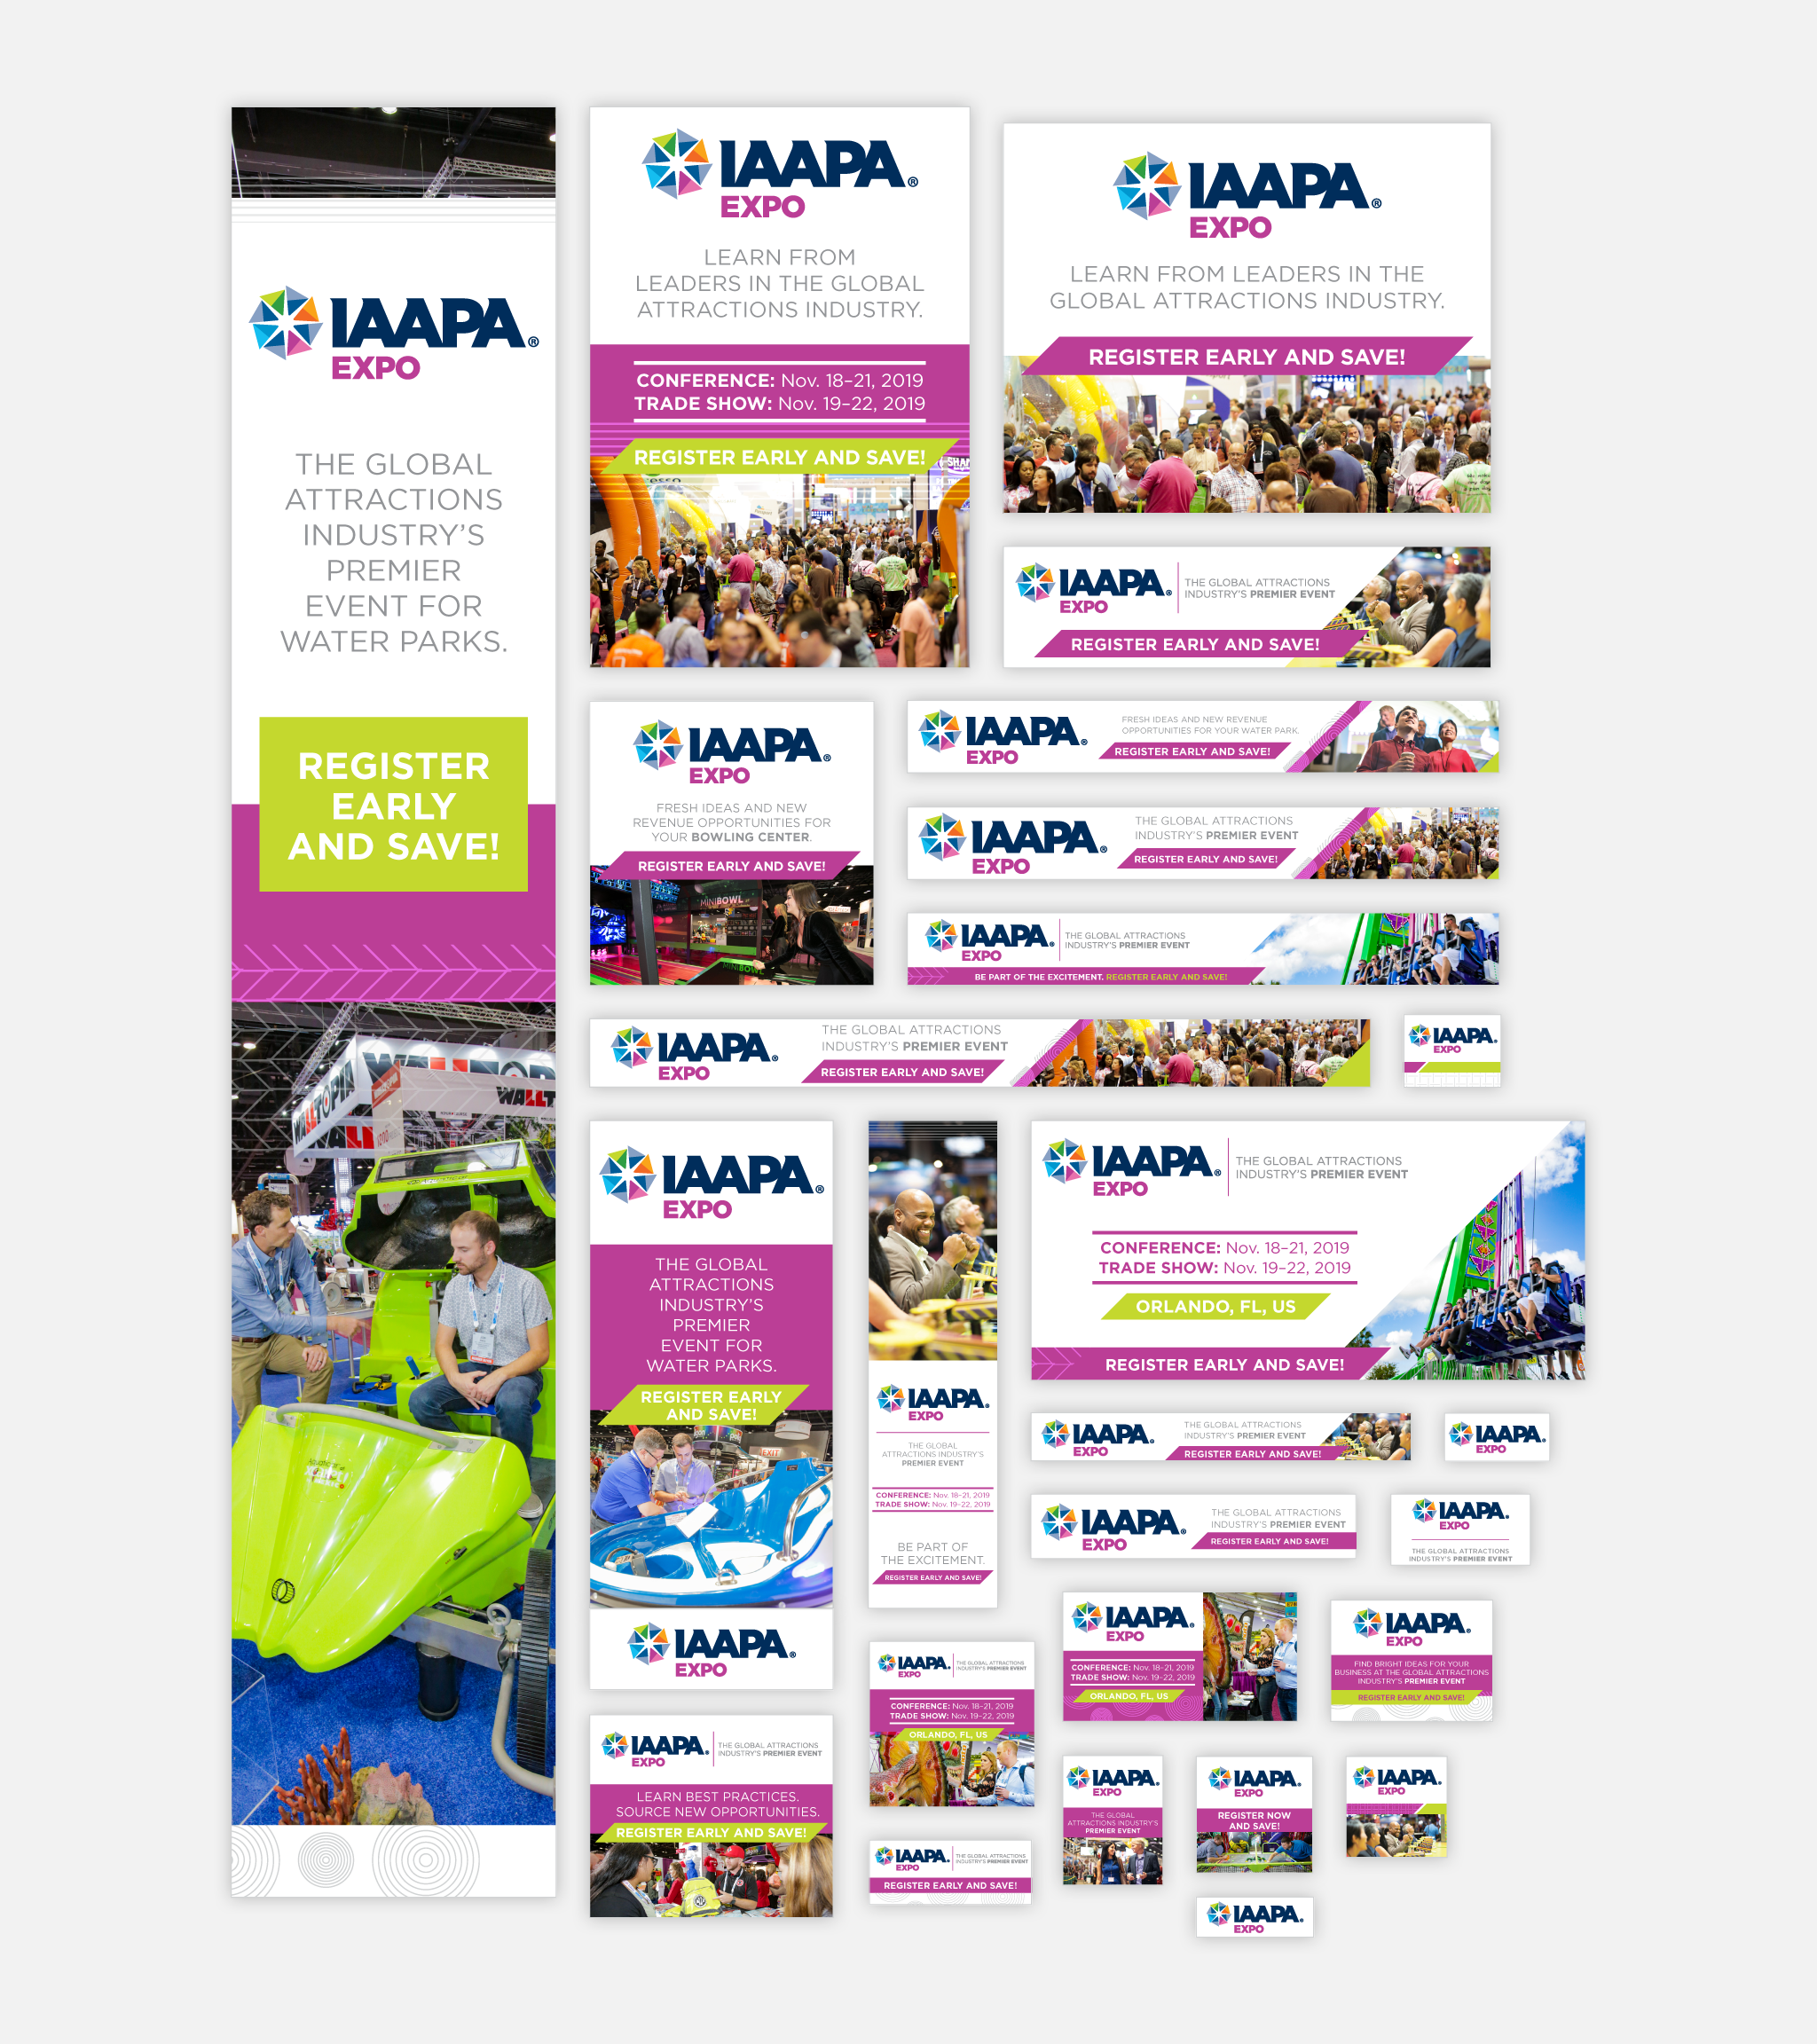 IAAPA Expo 2019's online advertising included several partnerships with trade publications, who shared these web ads online.